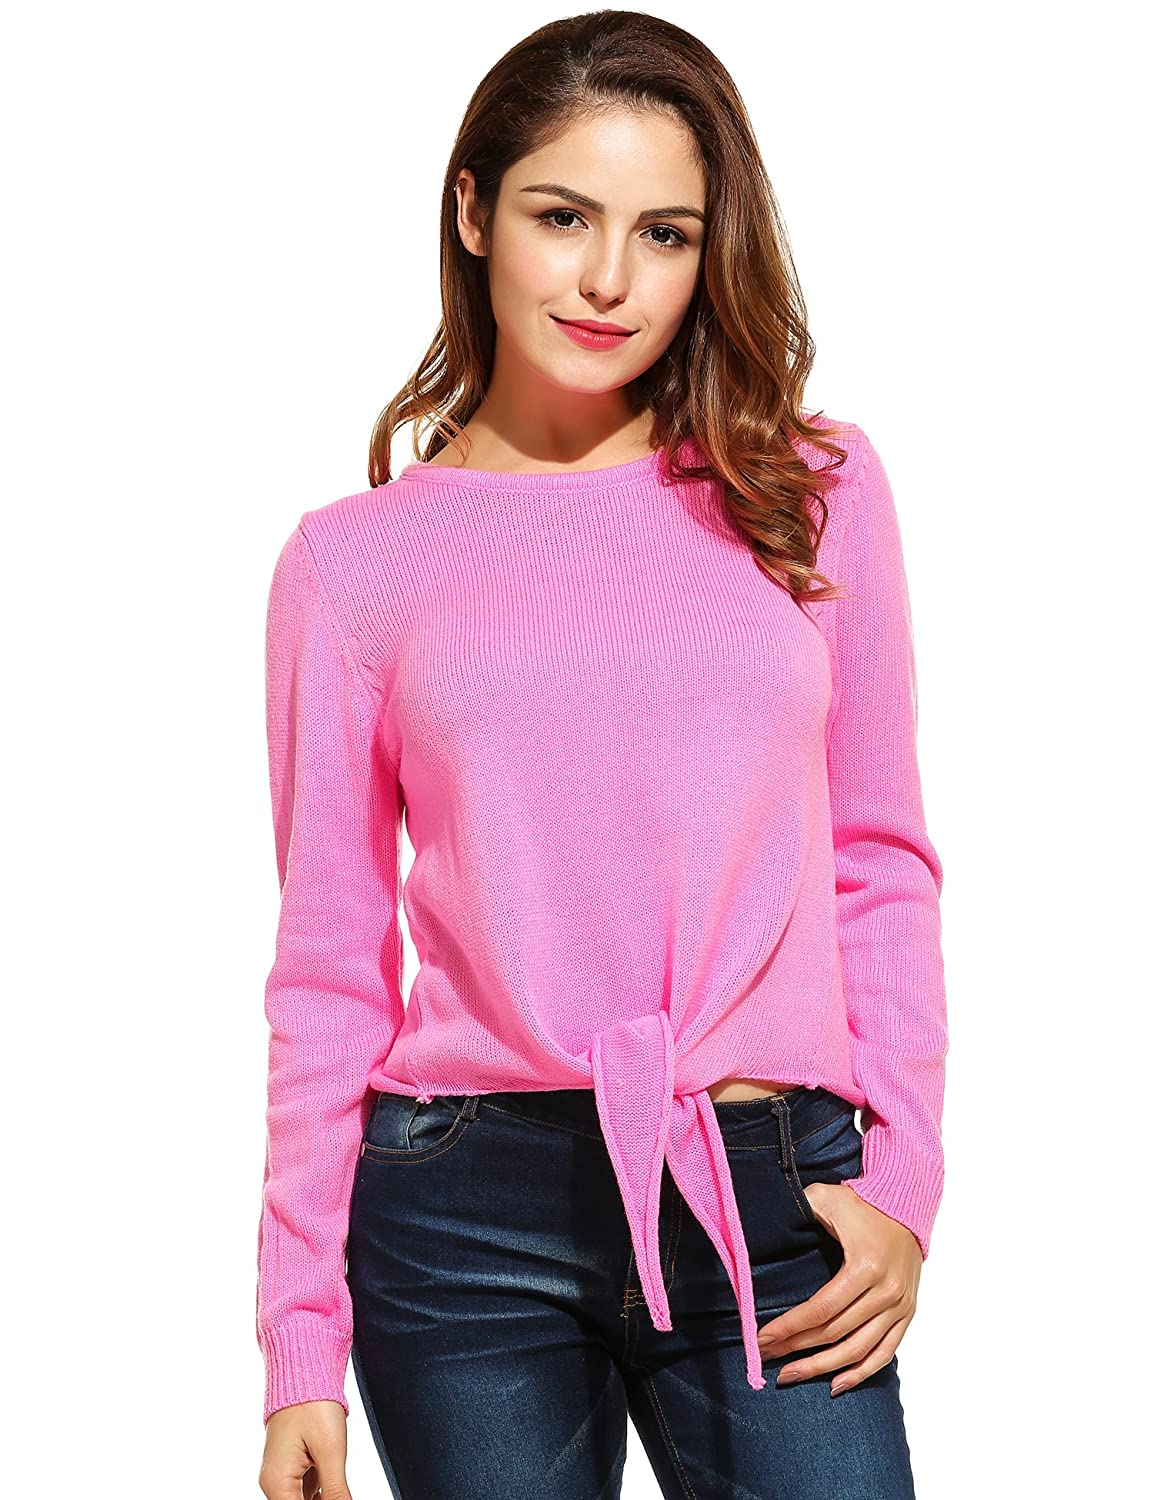 Women`s Knit Sweater,Zeagoo Casual Pullovers with Knot Round Neck Blouse Tops